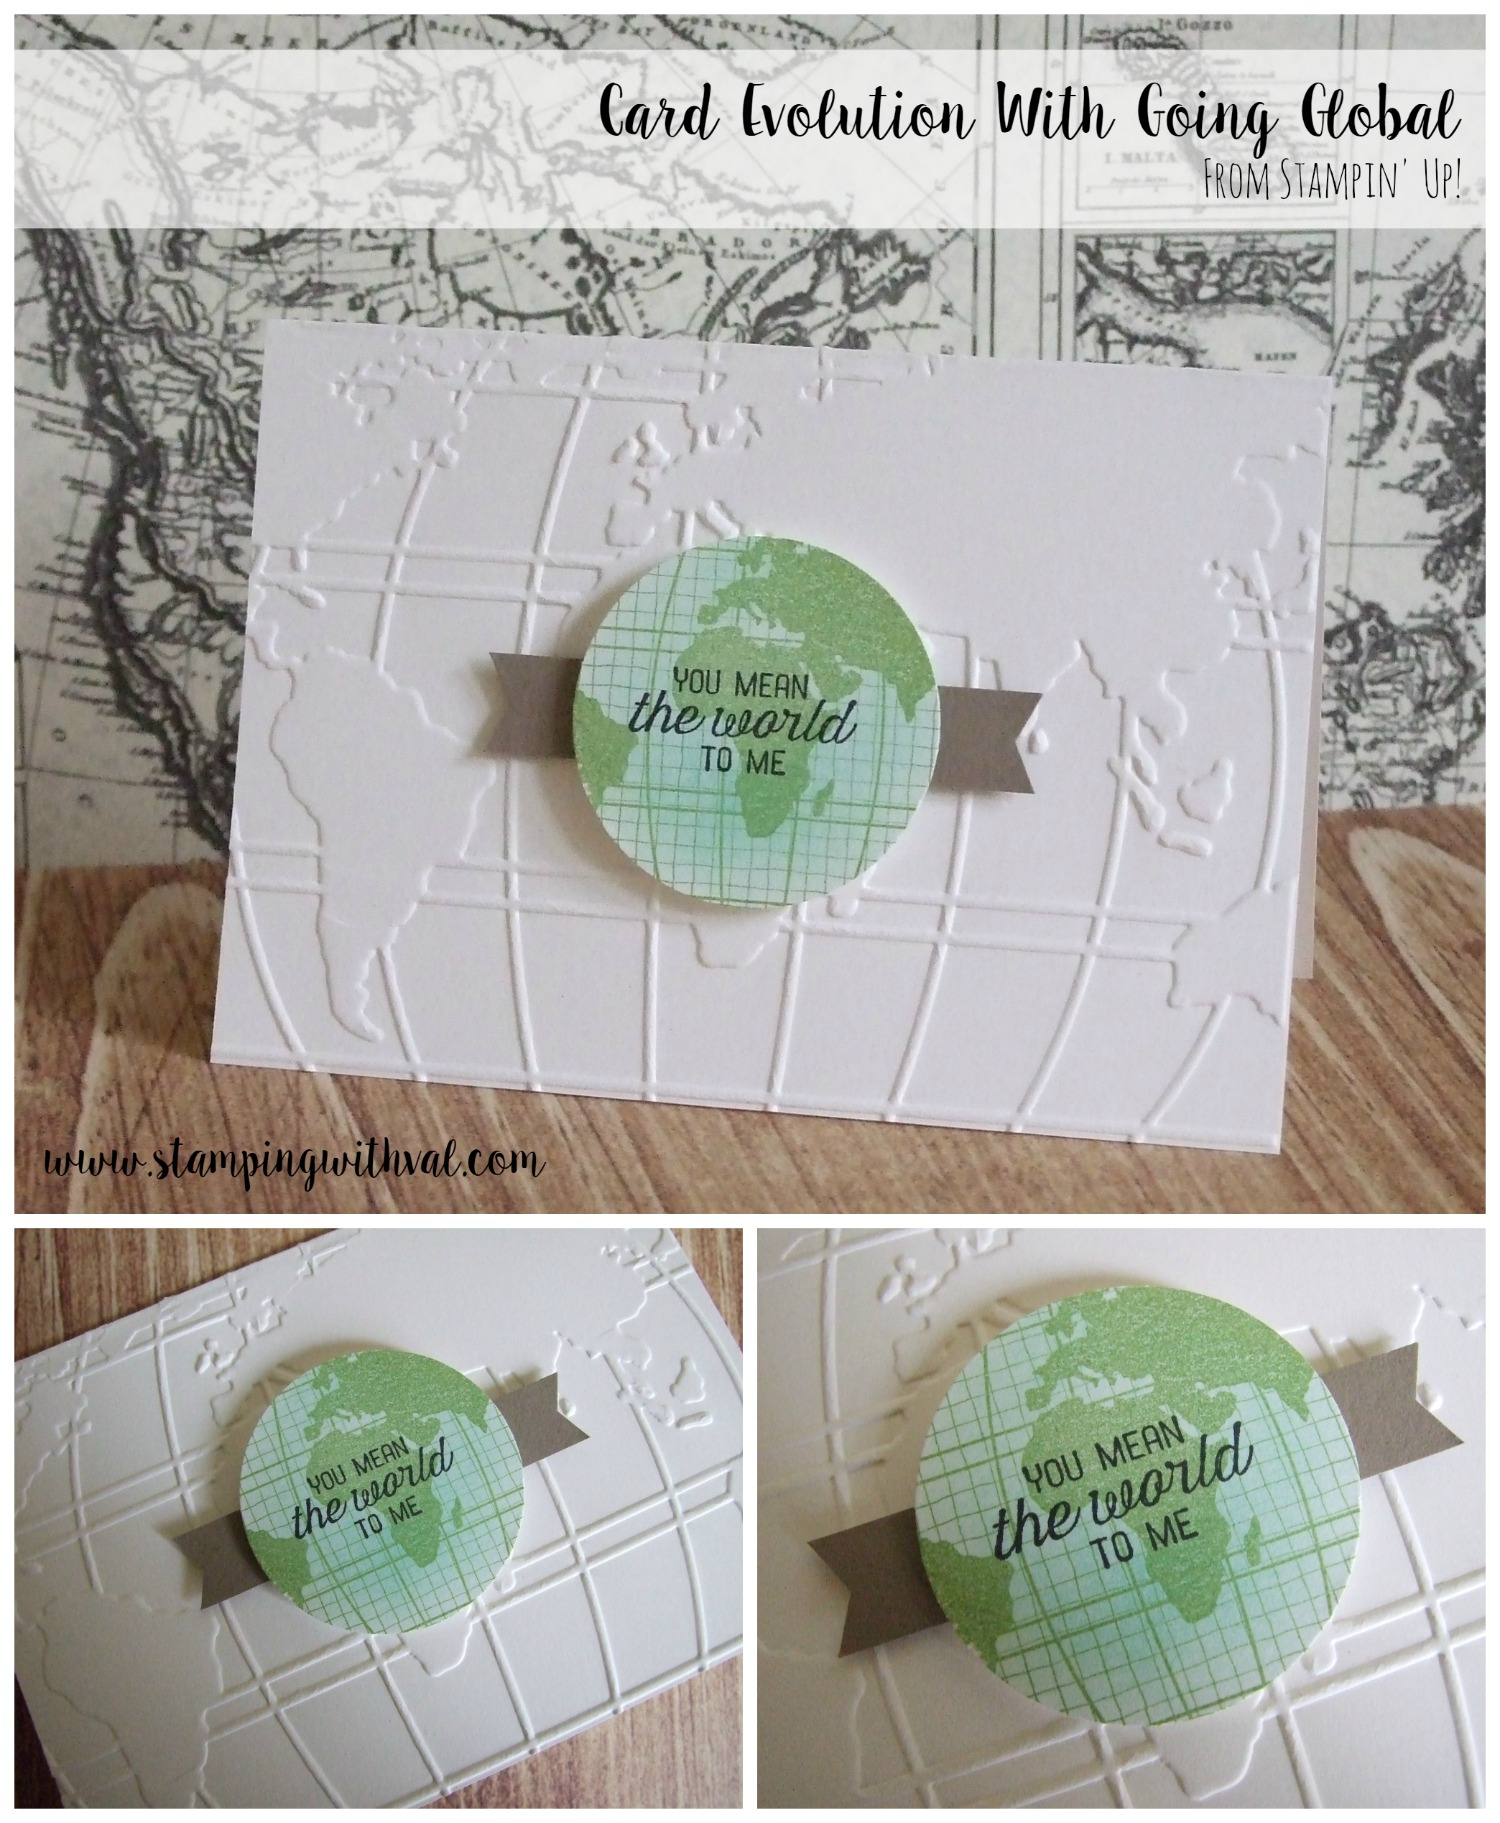 Going Global - Stampin' Up! - Stamping With Val - Valerie Moody; Independent Stampin' Up! Demonstrator. X